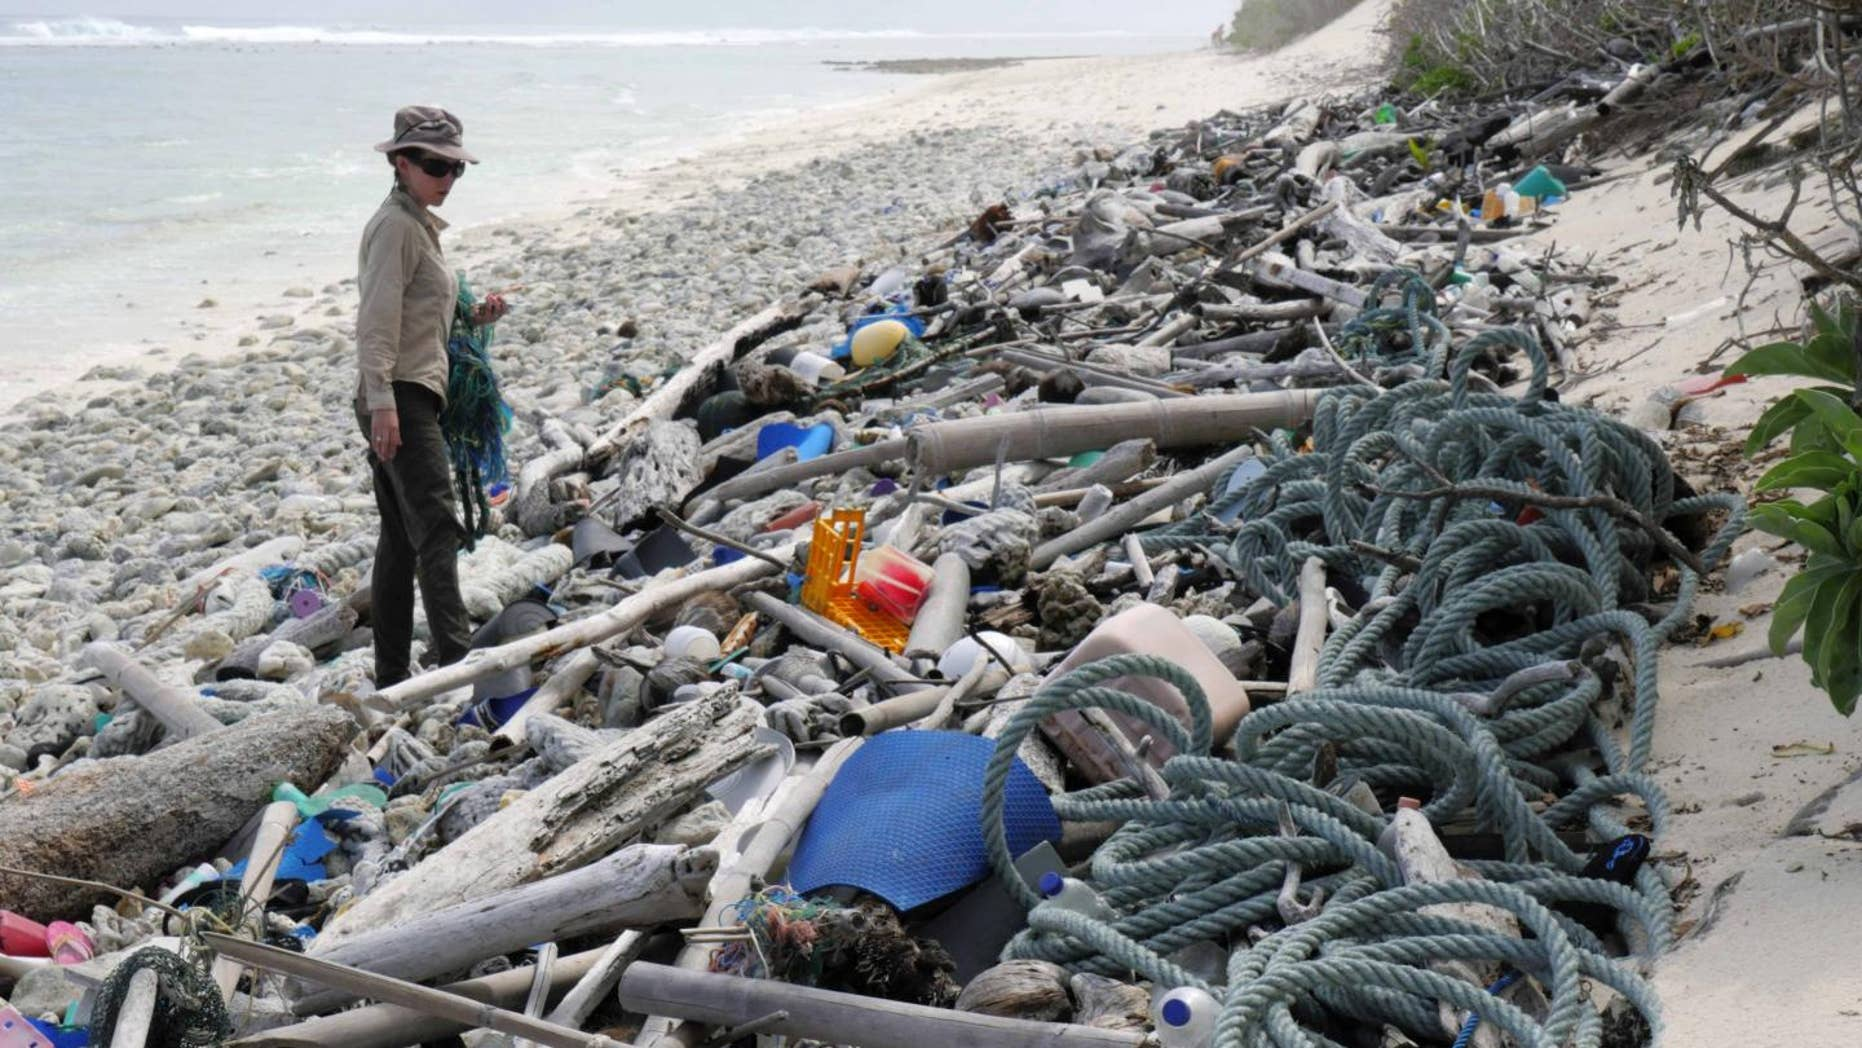 Lead author Jennifer Lavers looks out at the plastic debris covering a Cocos (Keeling) Island beach.